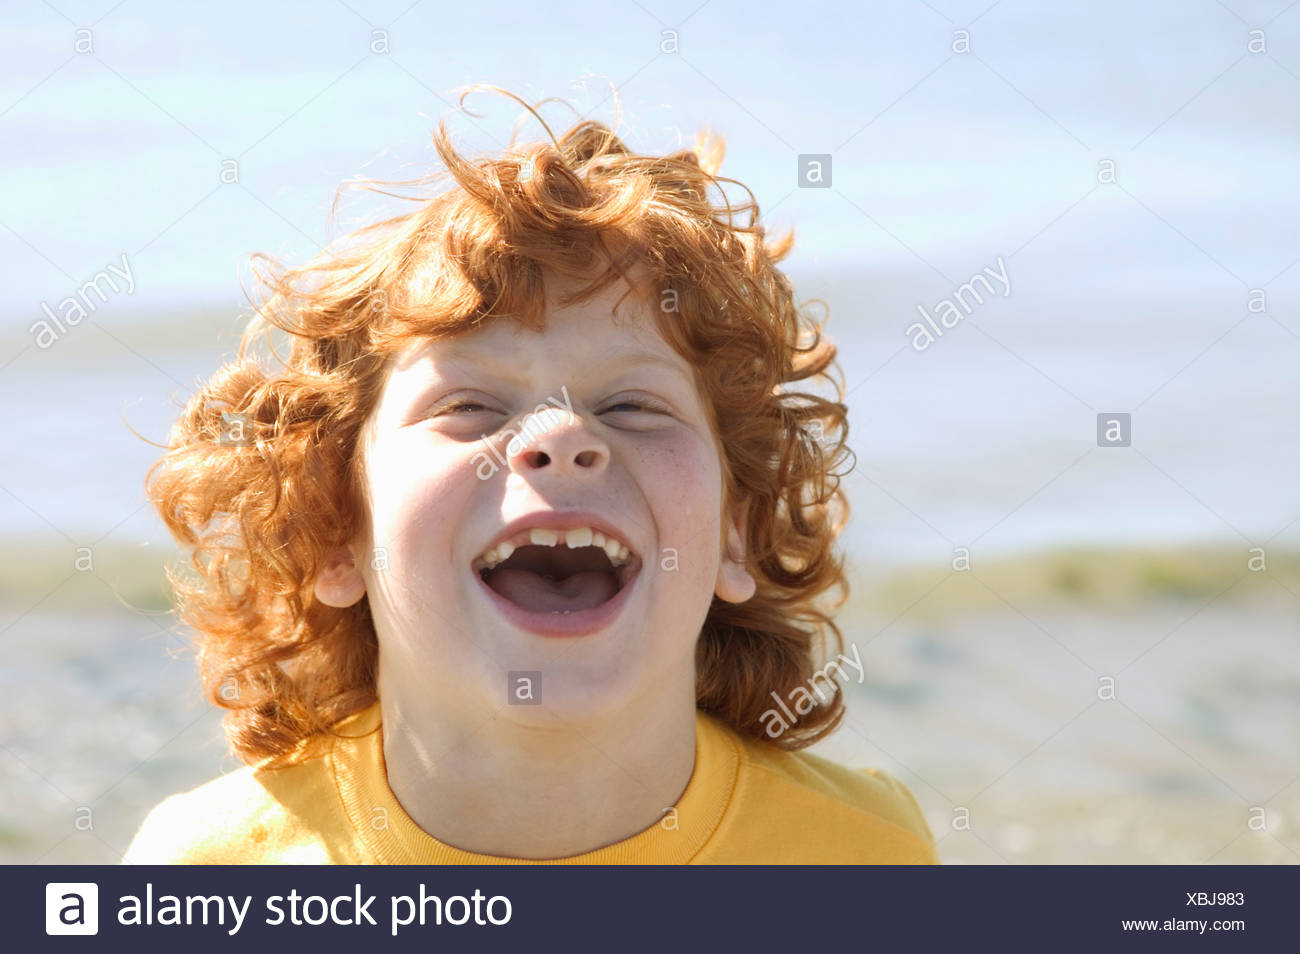 Portrait of a laughing red headed boy - Stock Image